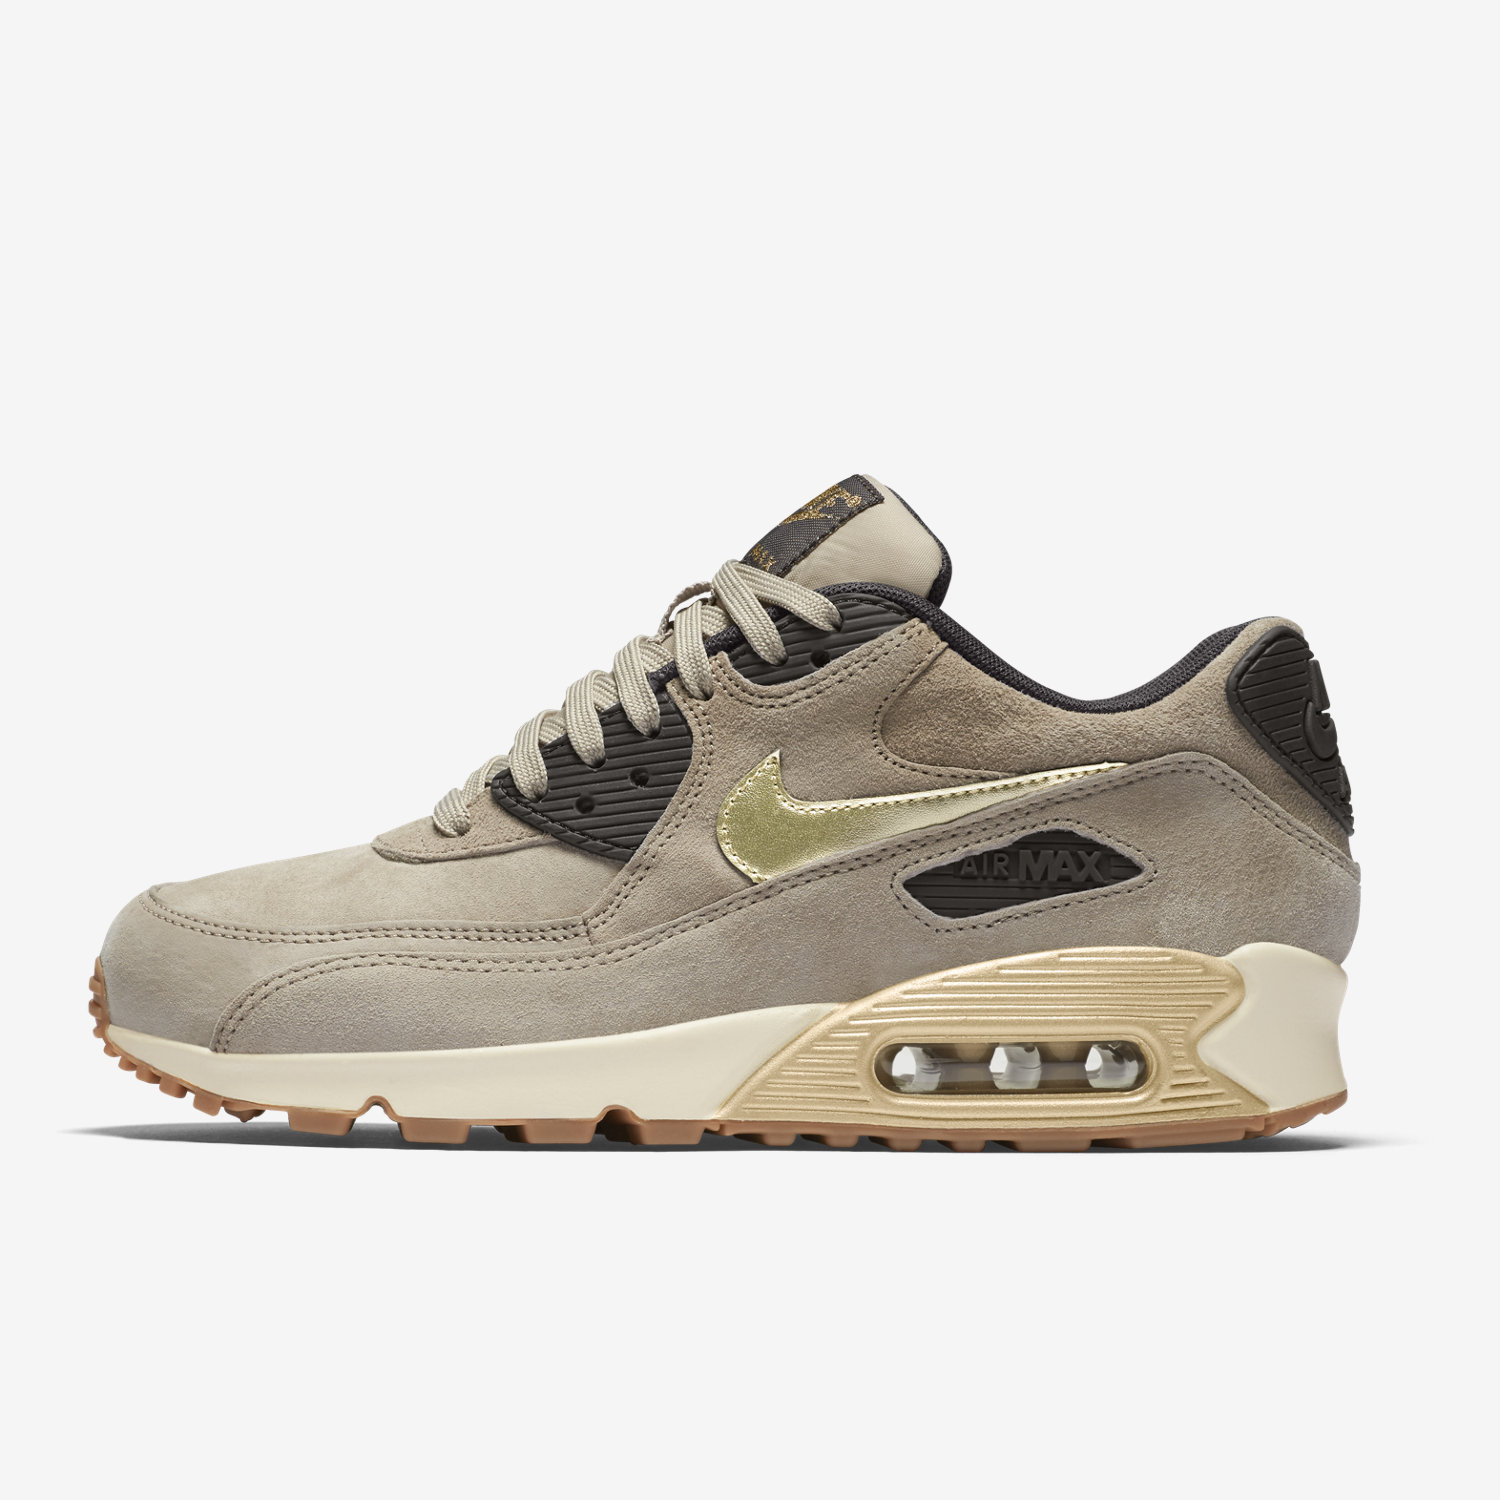 nike air max 90 women suede provincial archives of. Black Bedroom Furniture Sets. Home Design Ideas